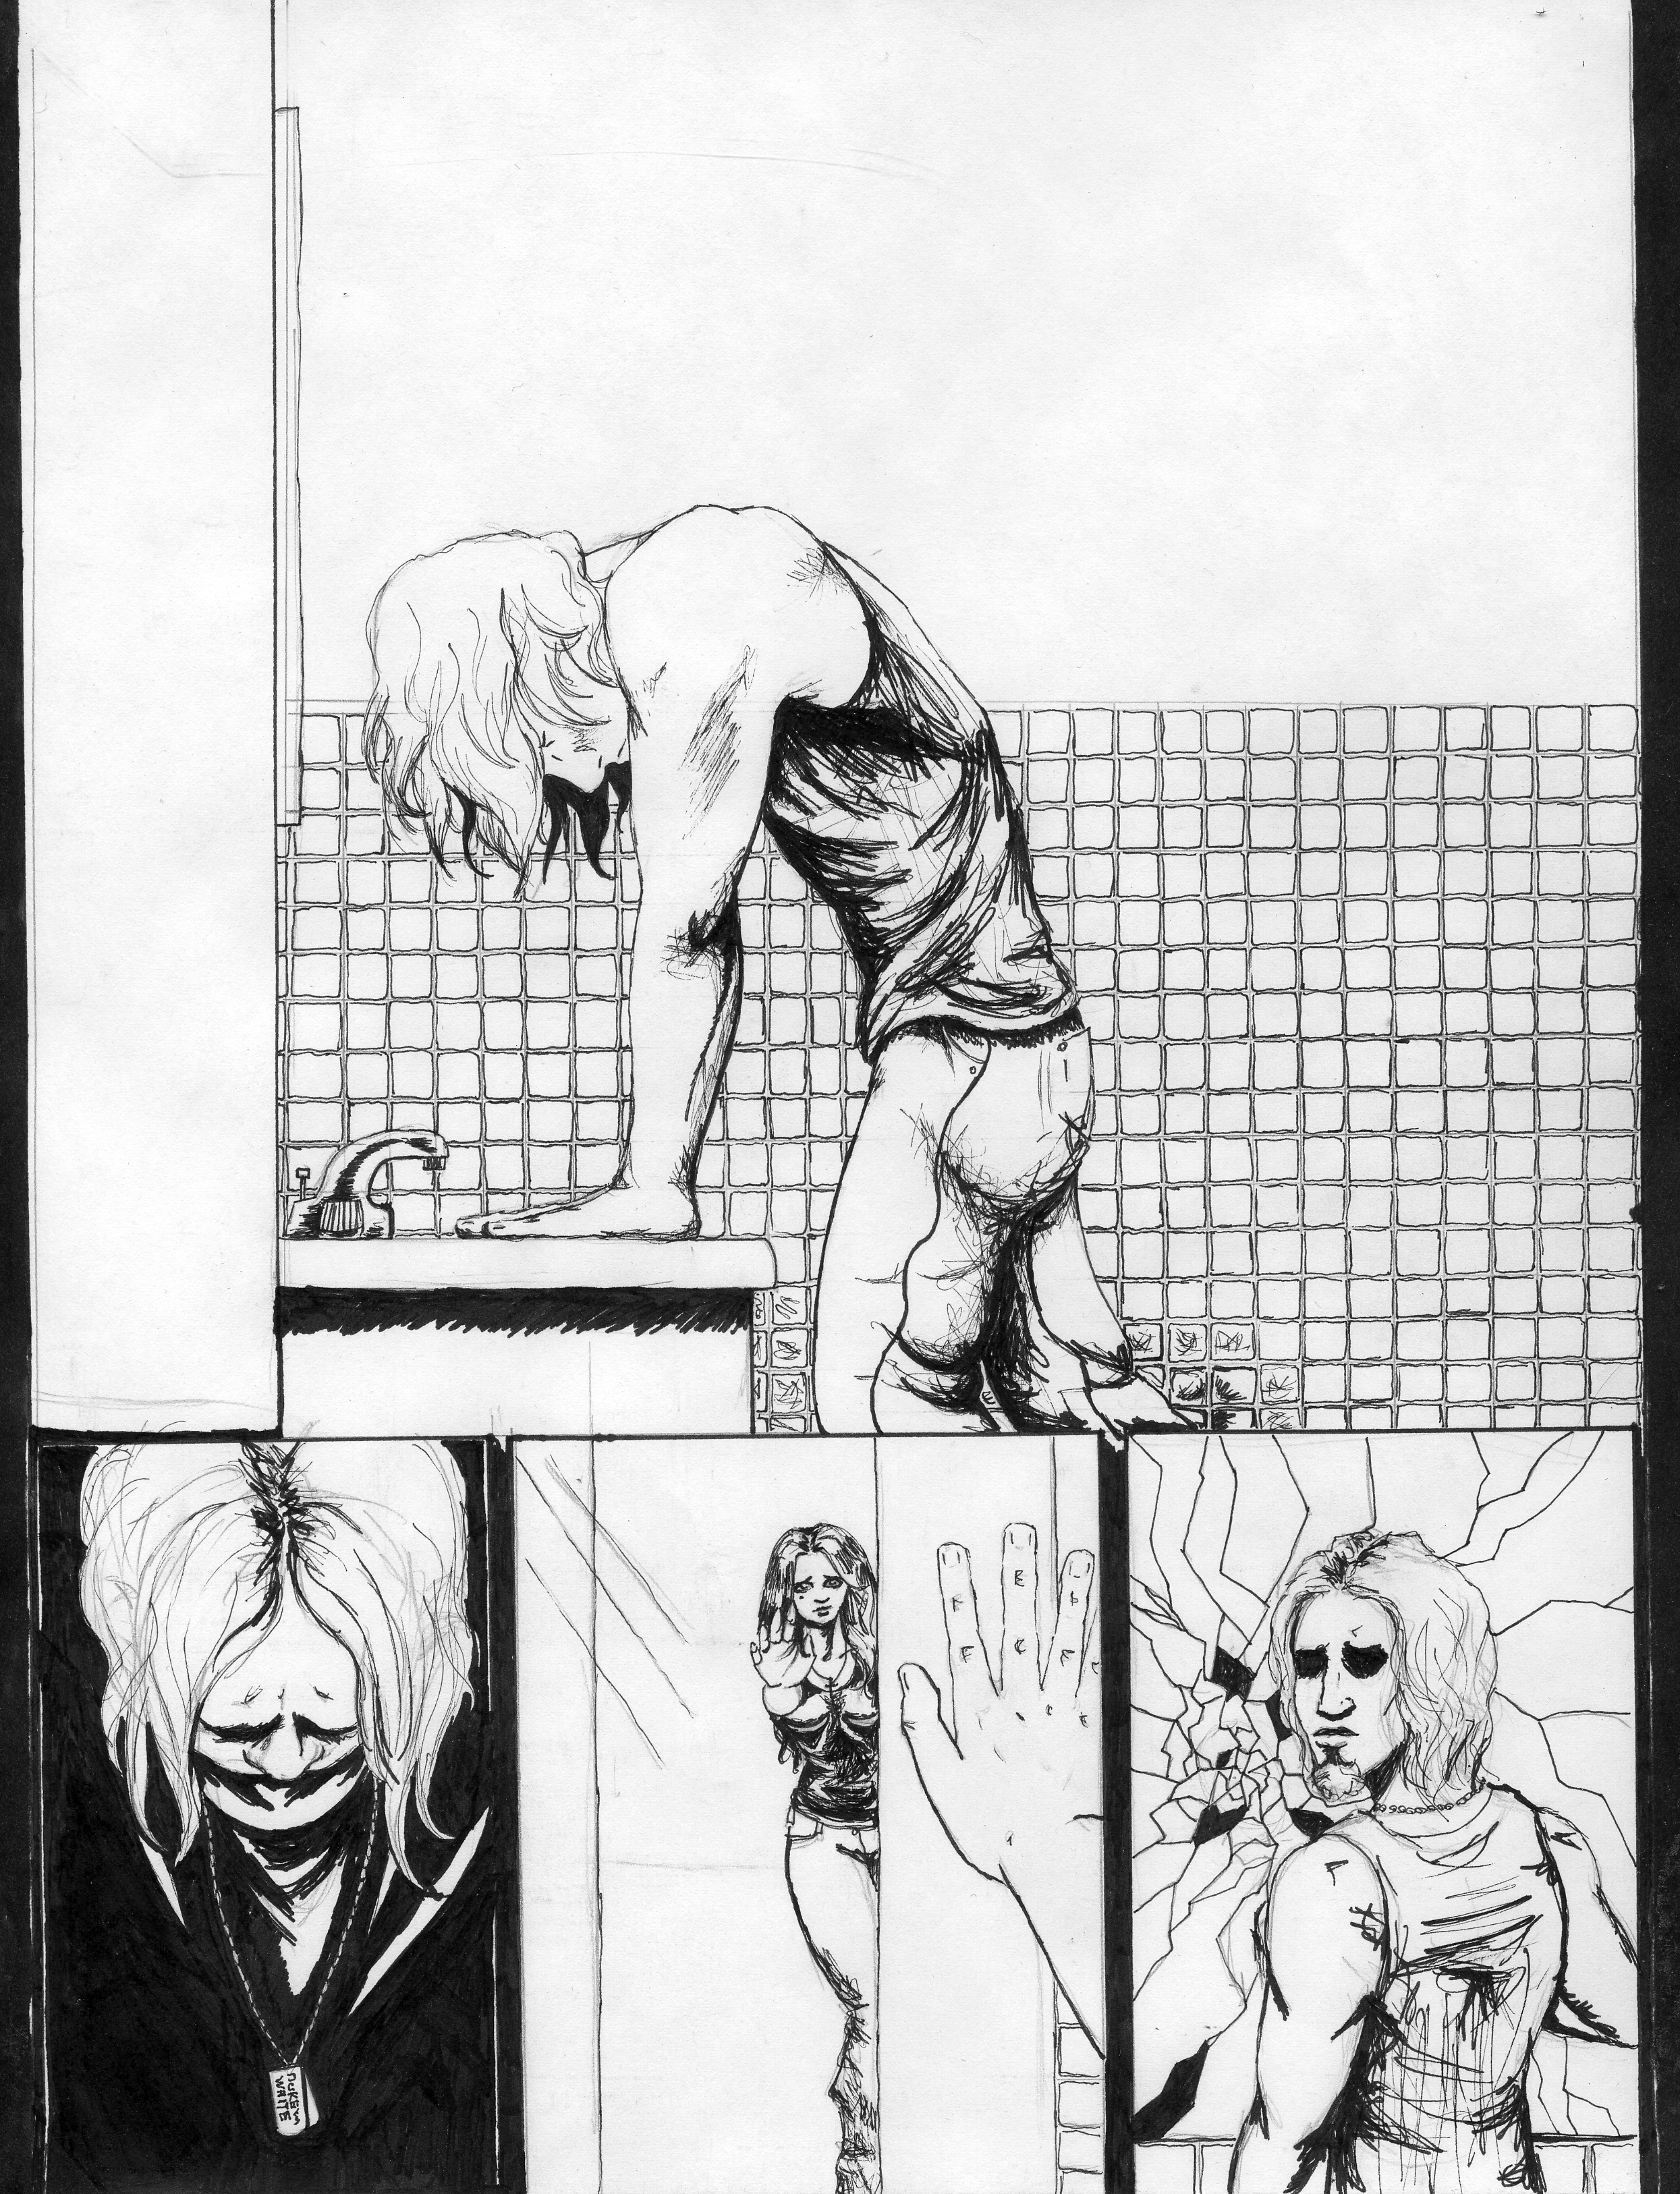 comic page, comic panel, layout, comic, ink, inks, man, woman, bathroom, tile, black and white, broken mirror